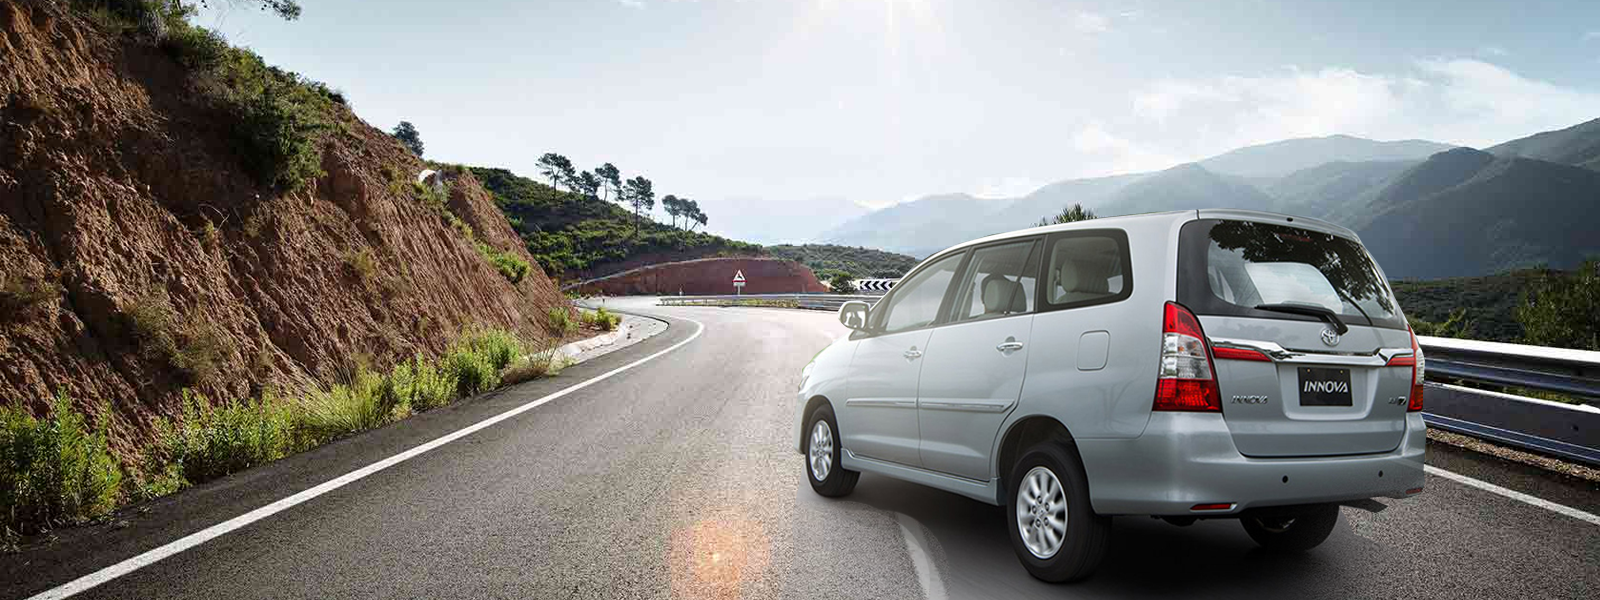 Rent A Car In Delhi Private Car And Driver In India